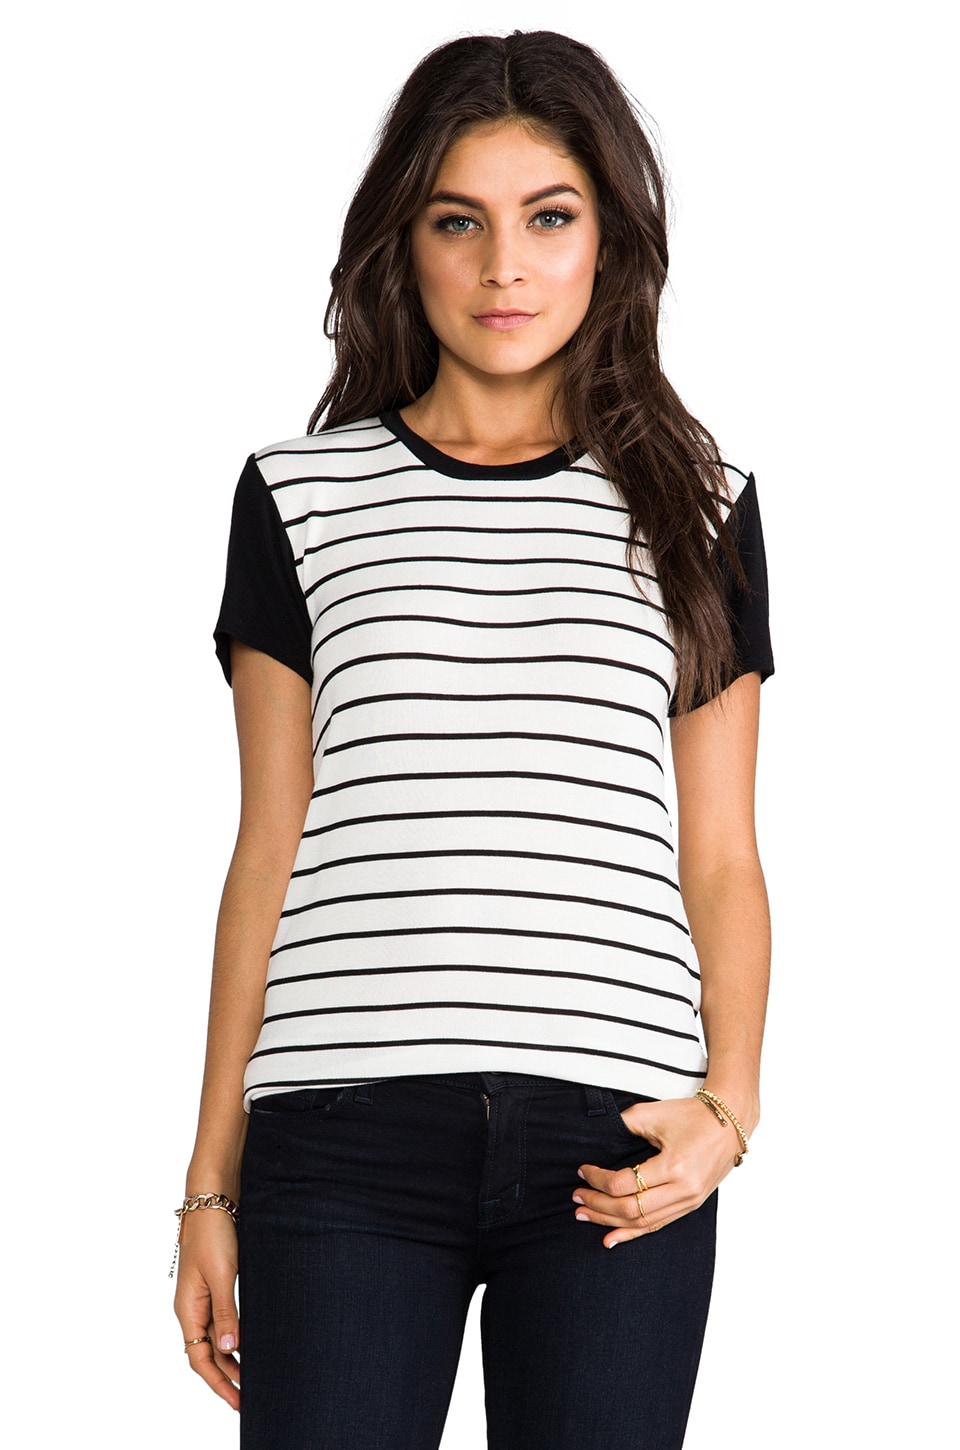 Whetherly Allen Stripe Tee in Creme/Black